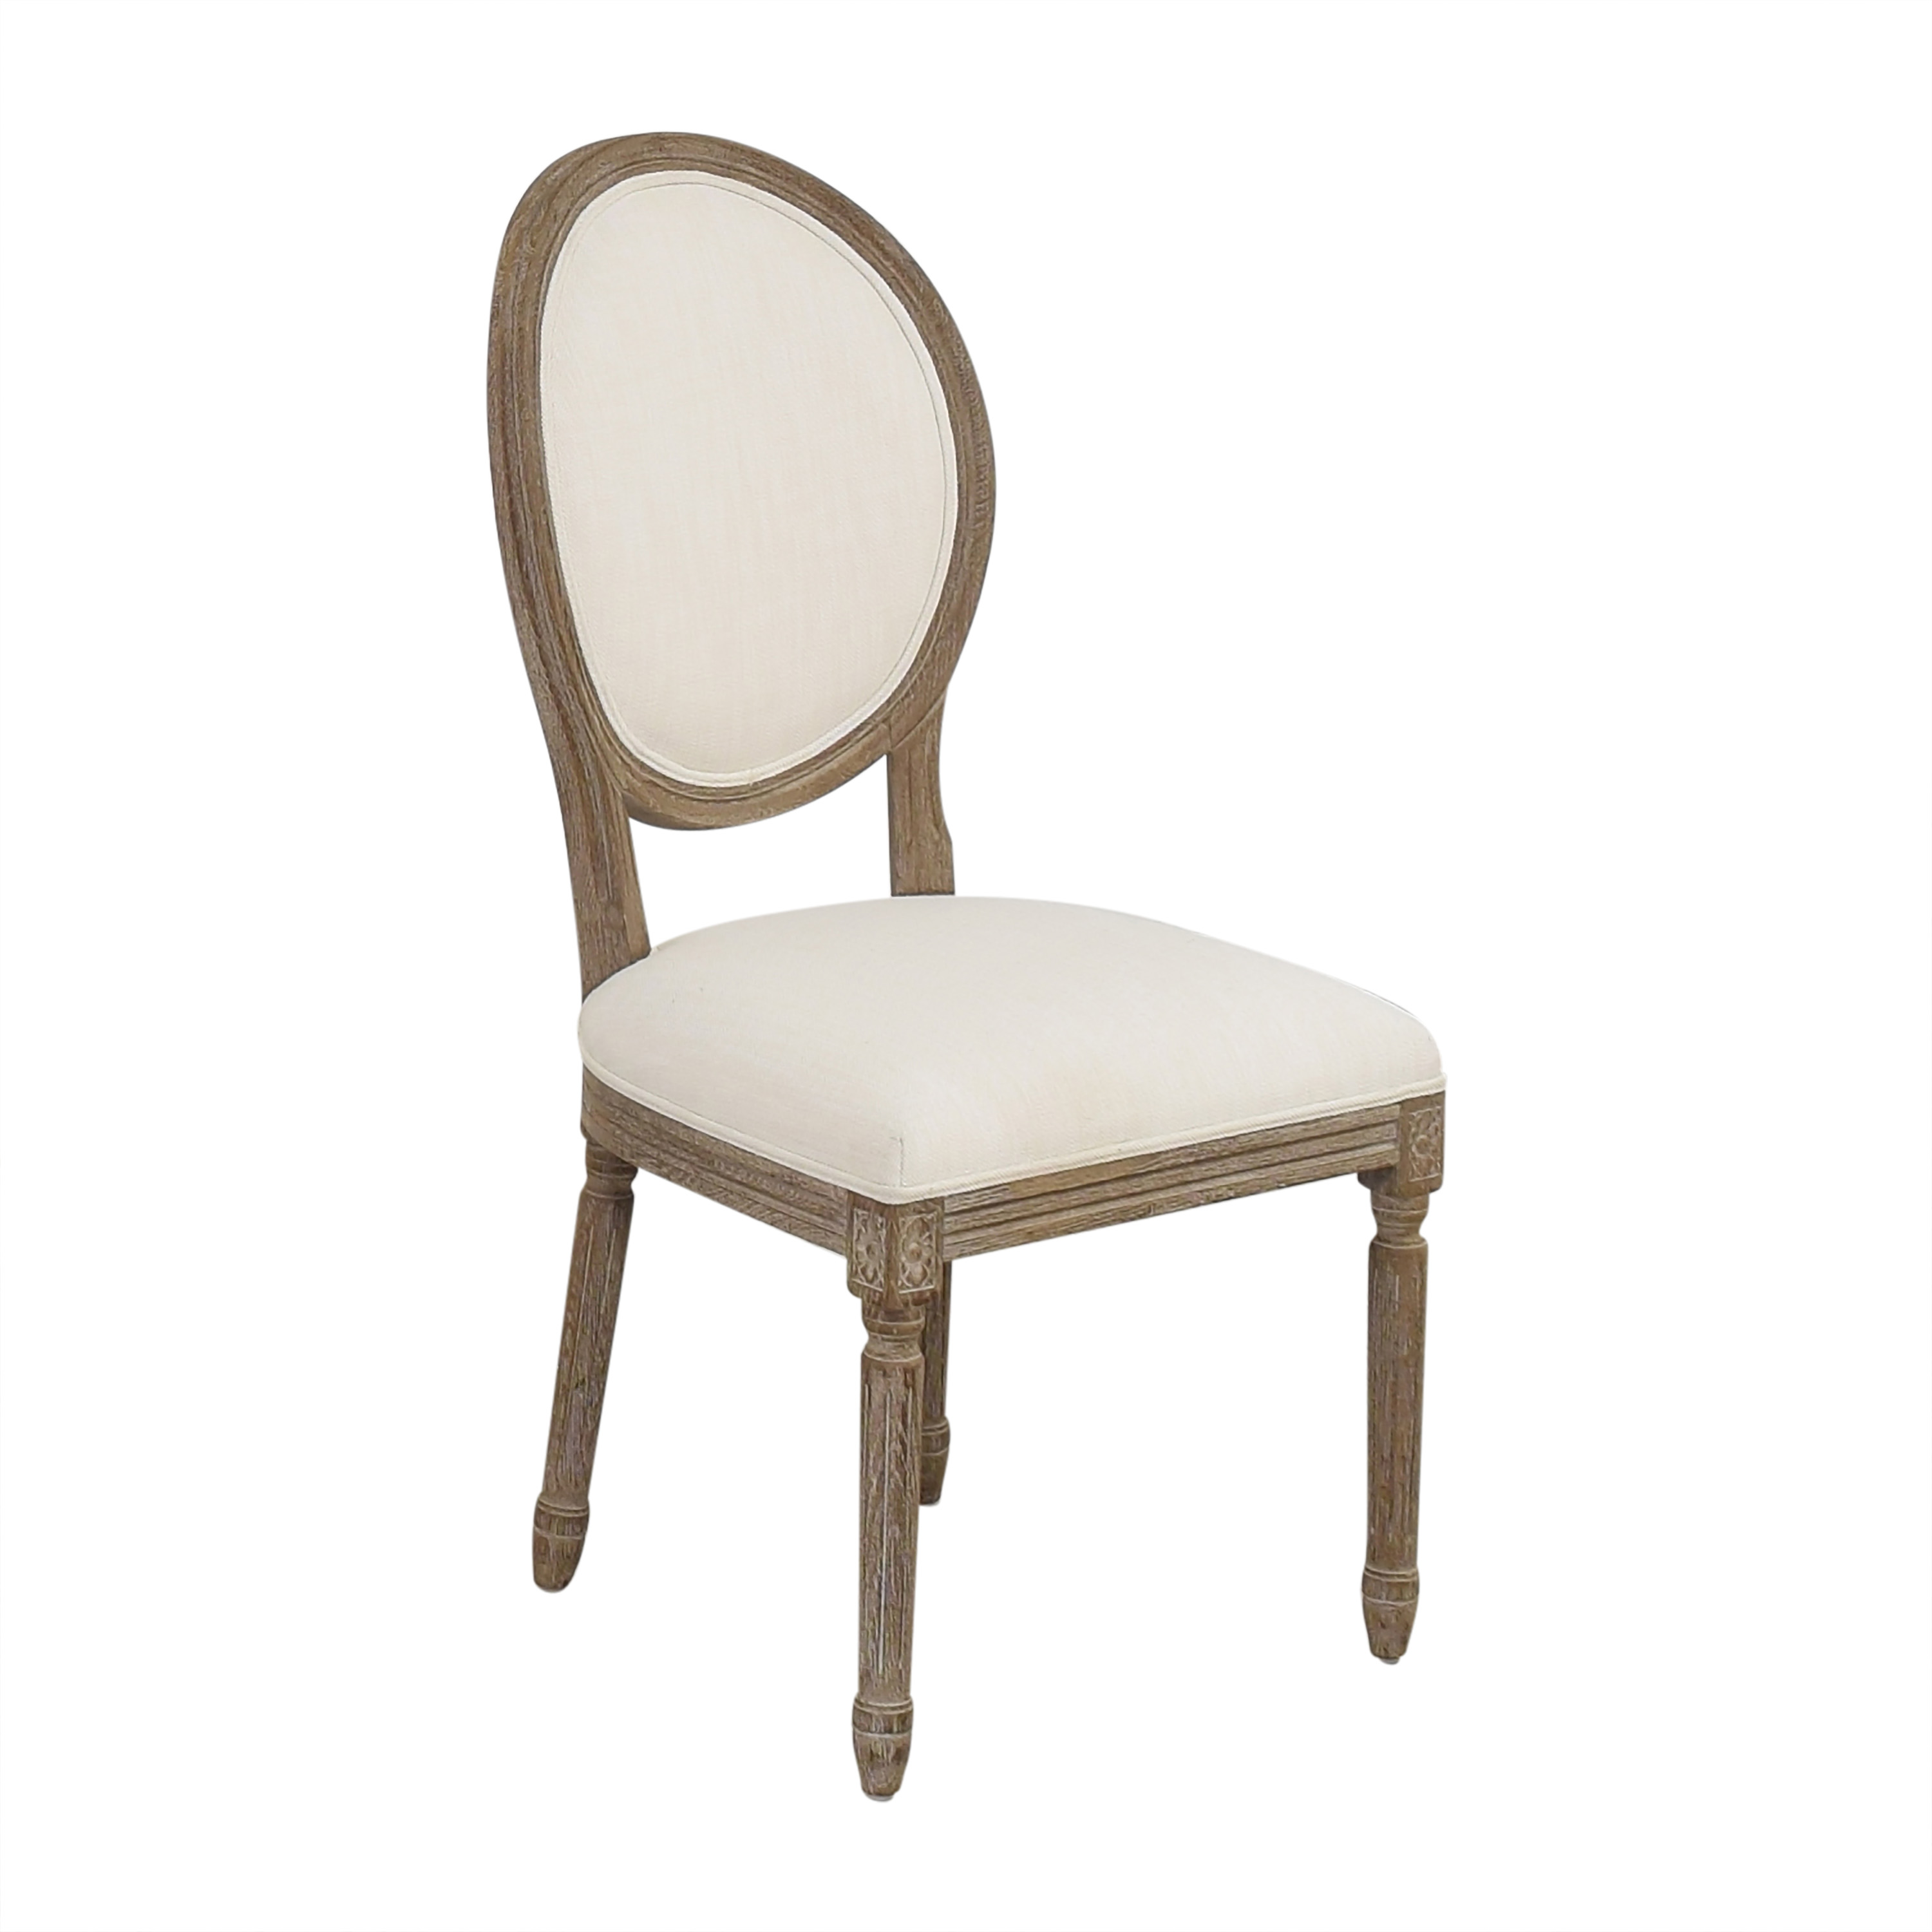 Restoration Hardware Restoration Hardware Vintage French Round Side Chair nyc